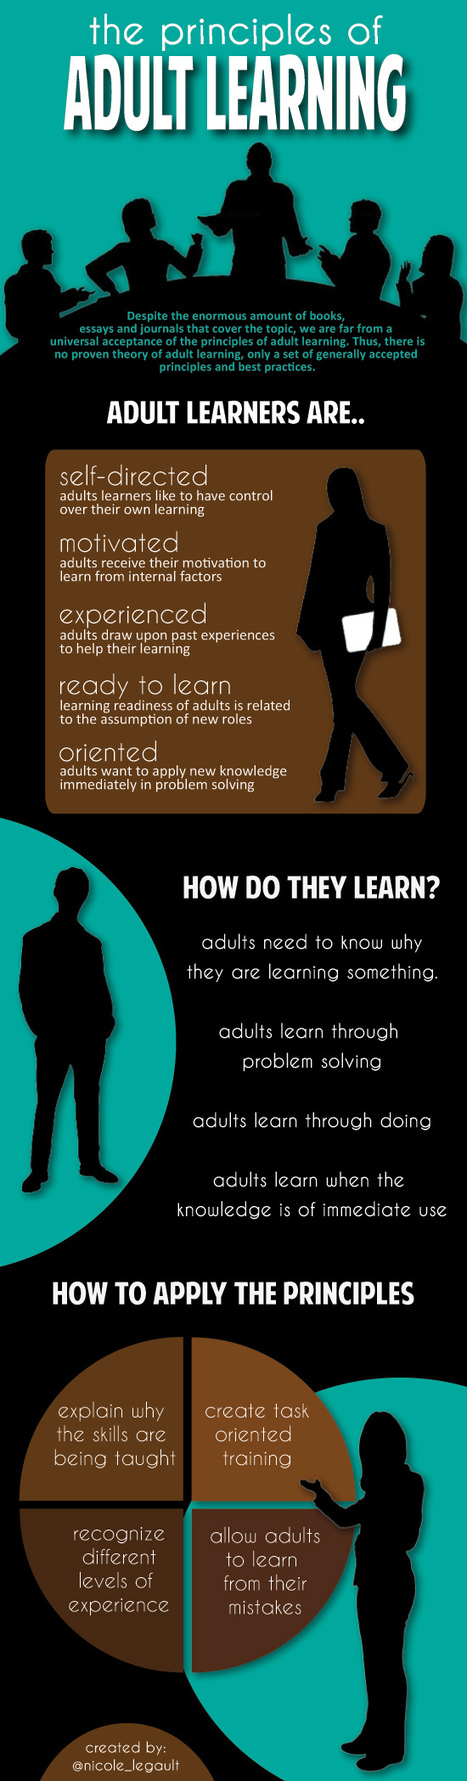 An Overview of the Principles of Adult Learning | Formation et formateurs | Scoop.it